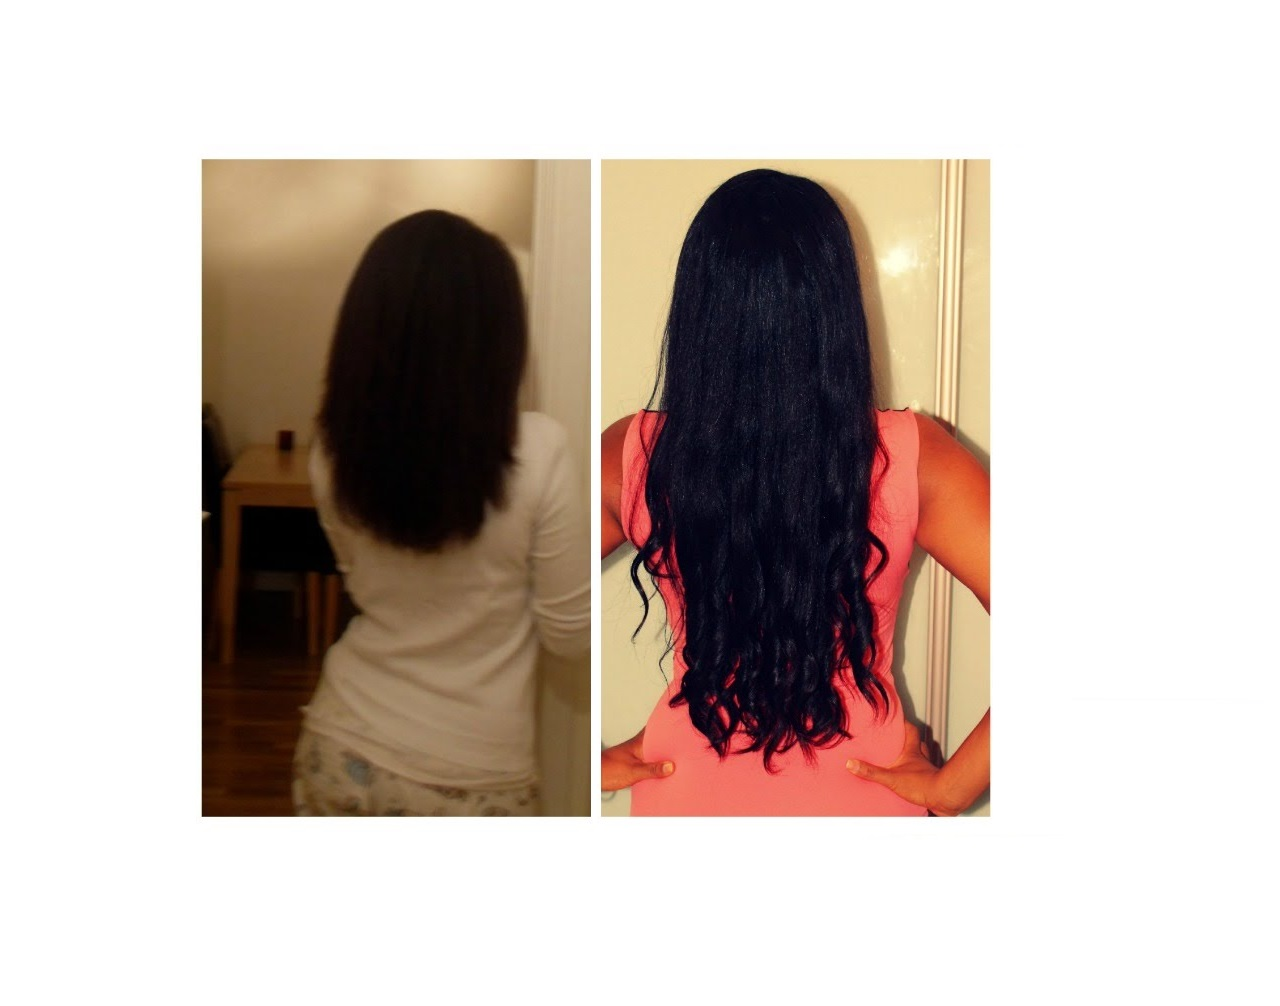 msm-natural-hair-growth-results-before-and-after-pictures-9